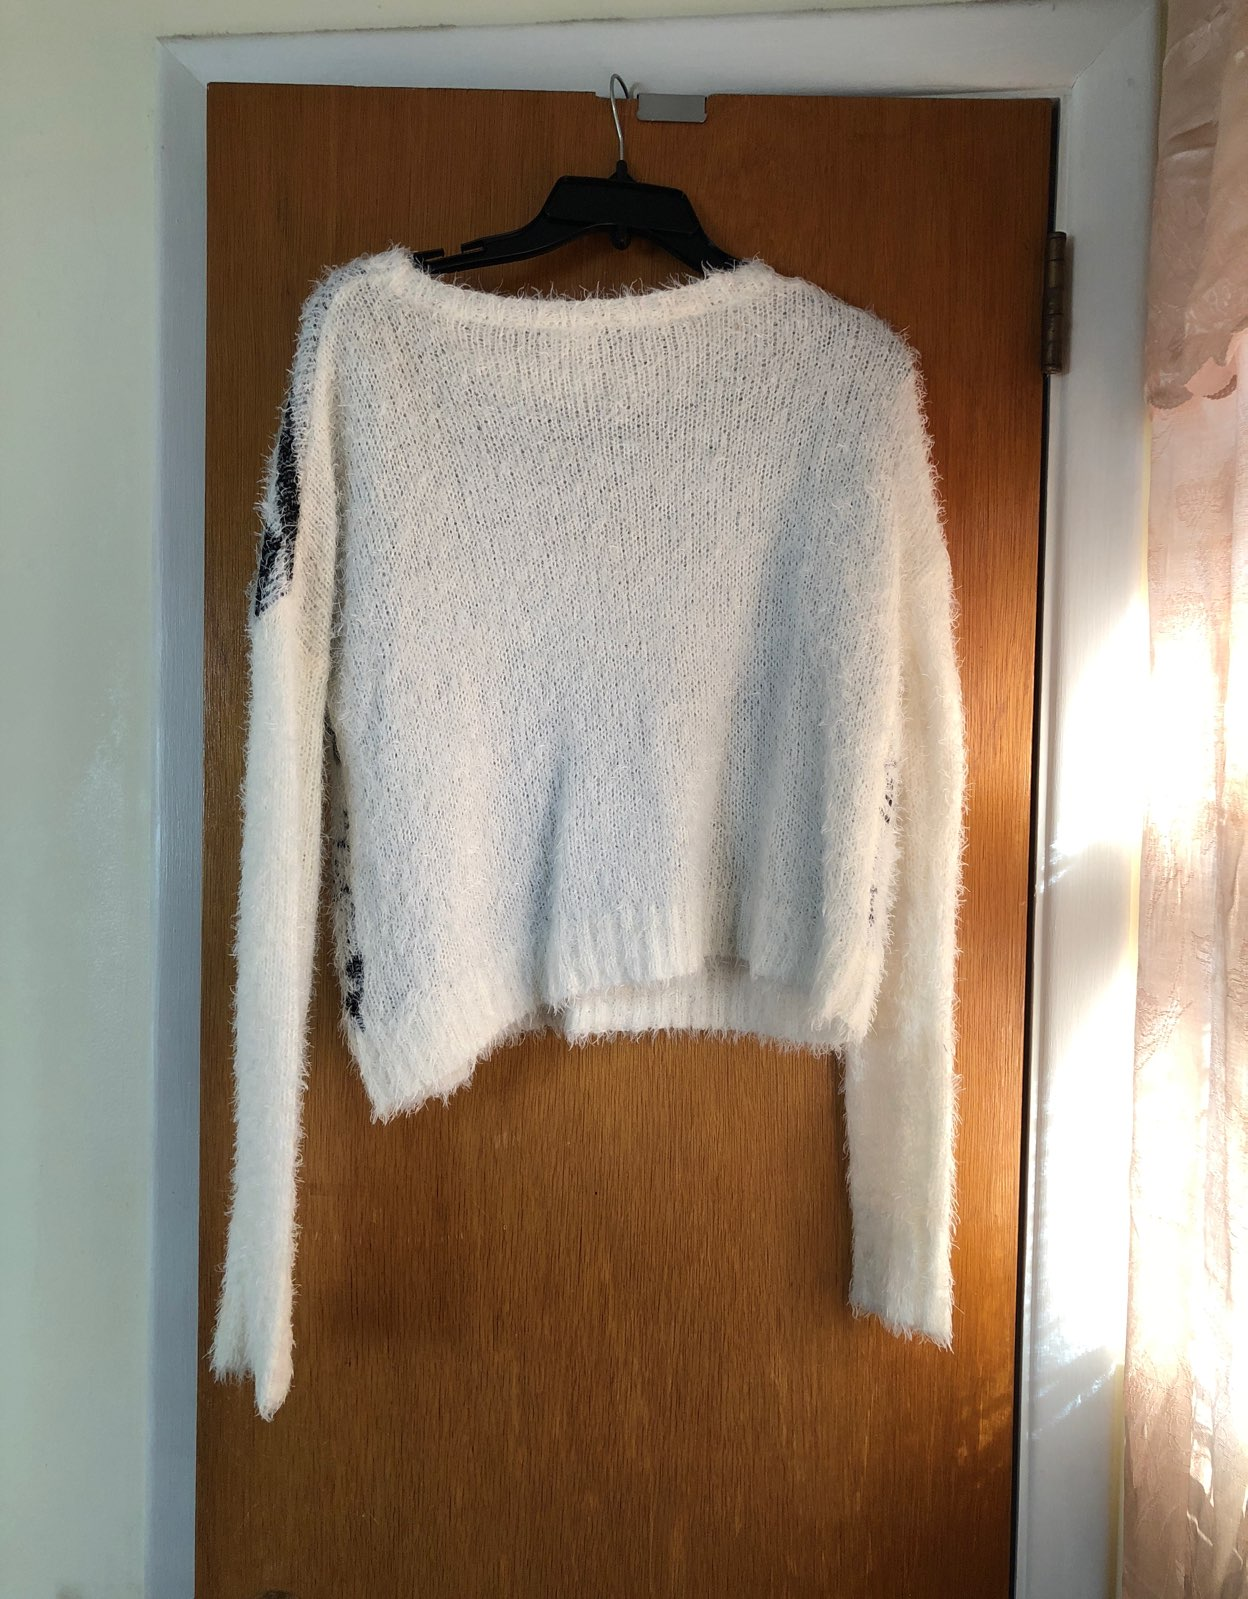 Soft White Sweater - Mercari: BUY & SELL THINGS YOU LOVE